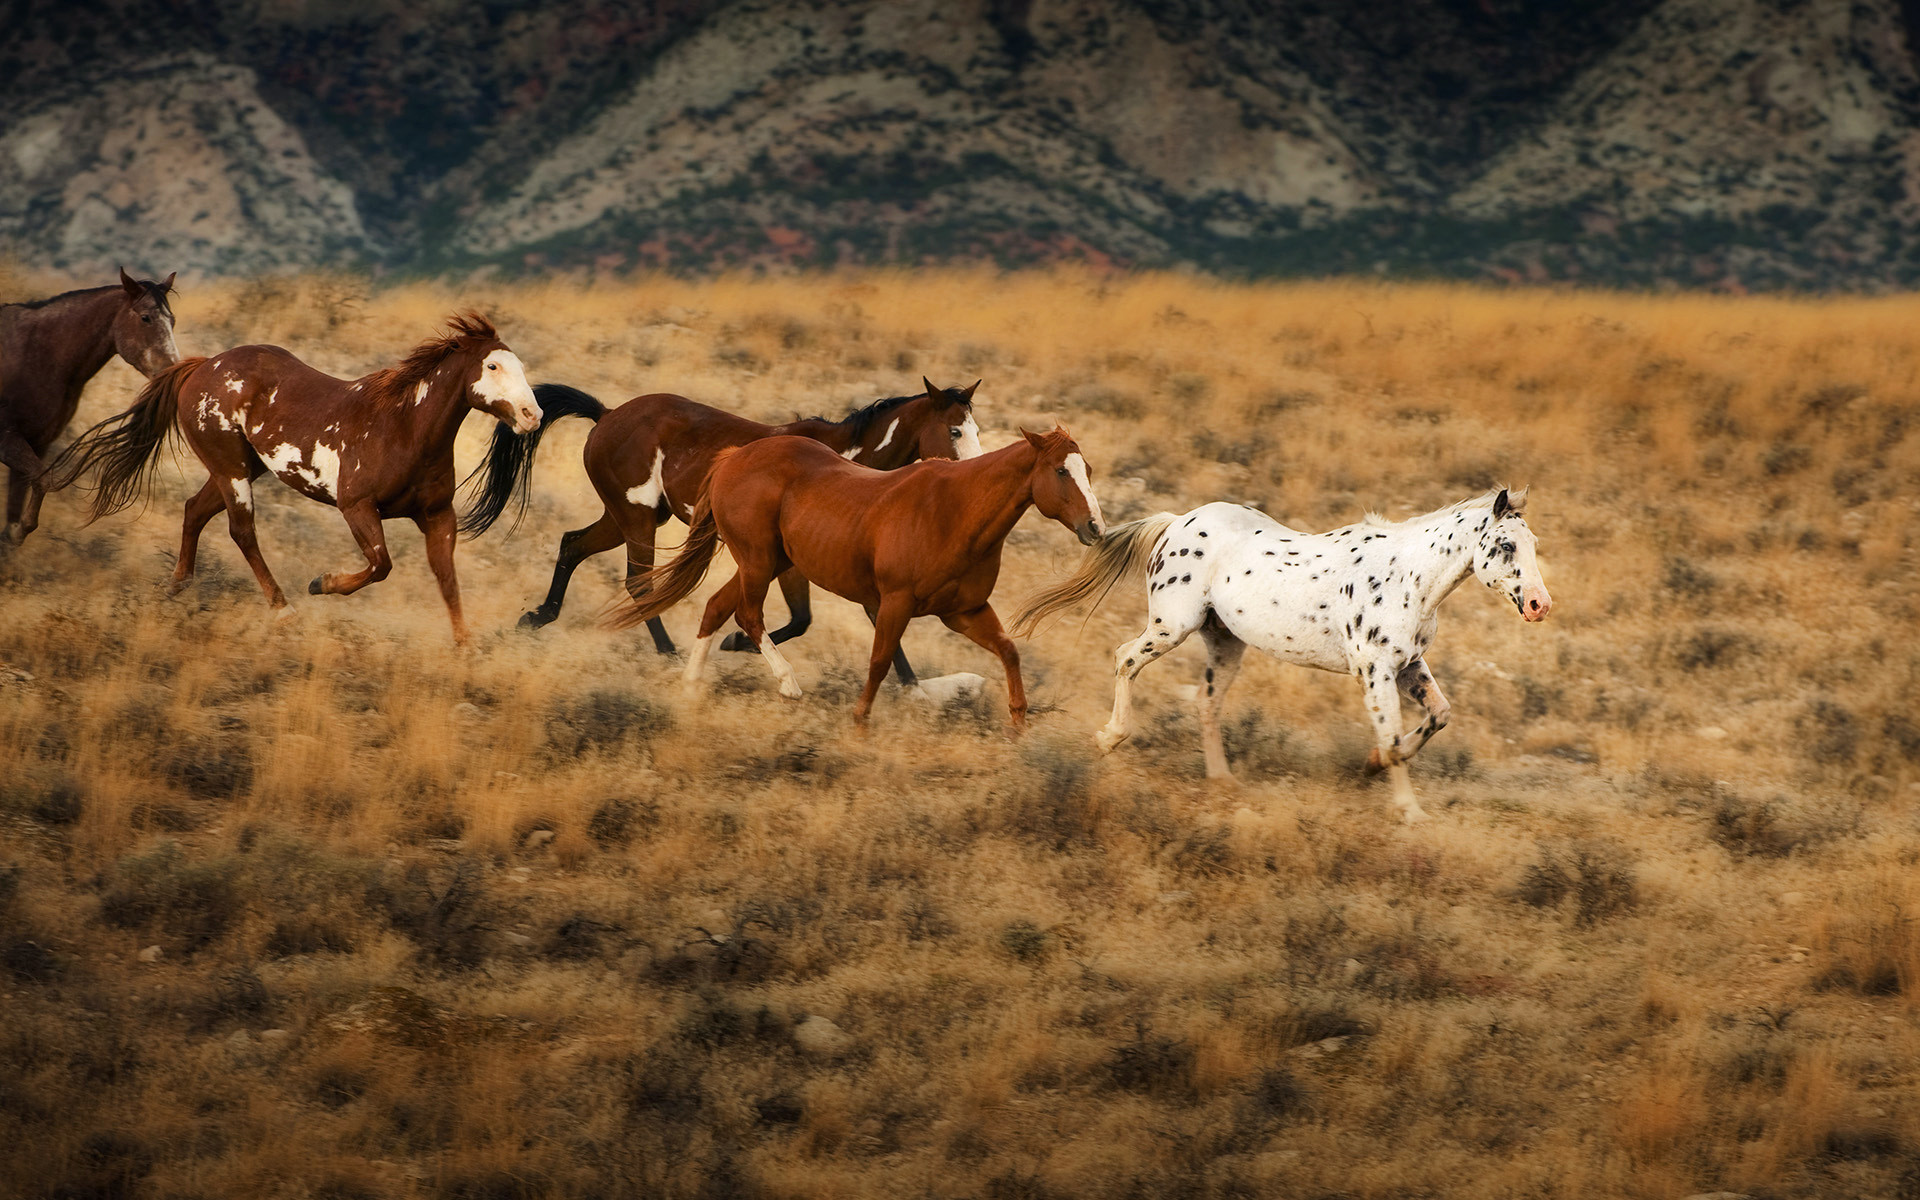 1920x1200 Wild horses in Wyoming. HD Wallpaper and background photos of Wild horses  in Wyoming for fans of Flicka & The Saddle Club images.